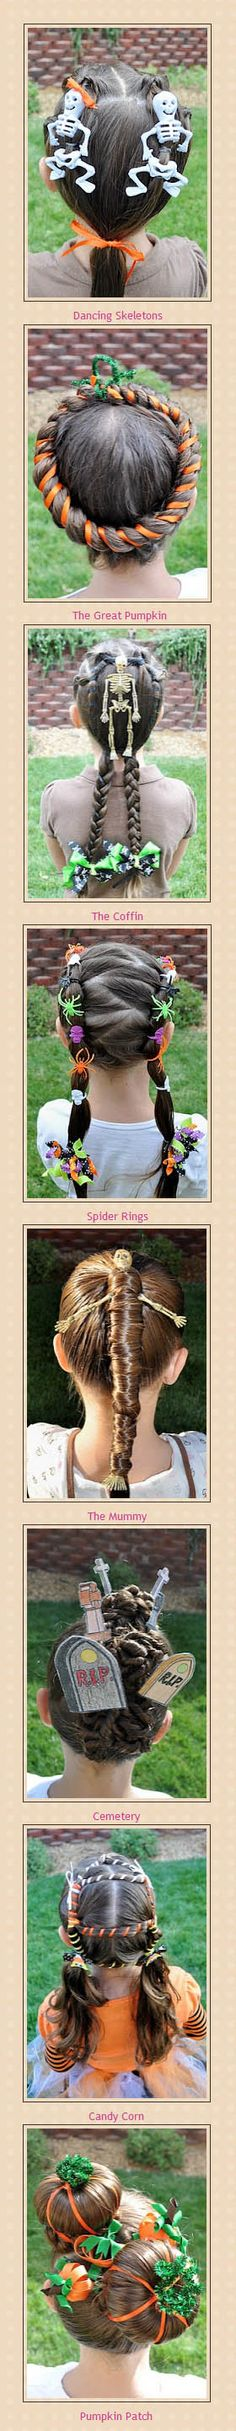 Halloween hairstyles Related posts: Halloween hairstyles for kids, girls, adults, teens and women! Tutorials and ide … DIY Halloween Spider Hair Bun Tutorial Is Easy and Inexpensive! Diy Halloween Spider, Spirit Halloween, Fall Halloween, Halloween Crafts, Halloween Party, Halloween Stuff, Cute Girls Hairstyles, Holiday Hairstyles, Halloween Hairstyles